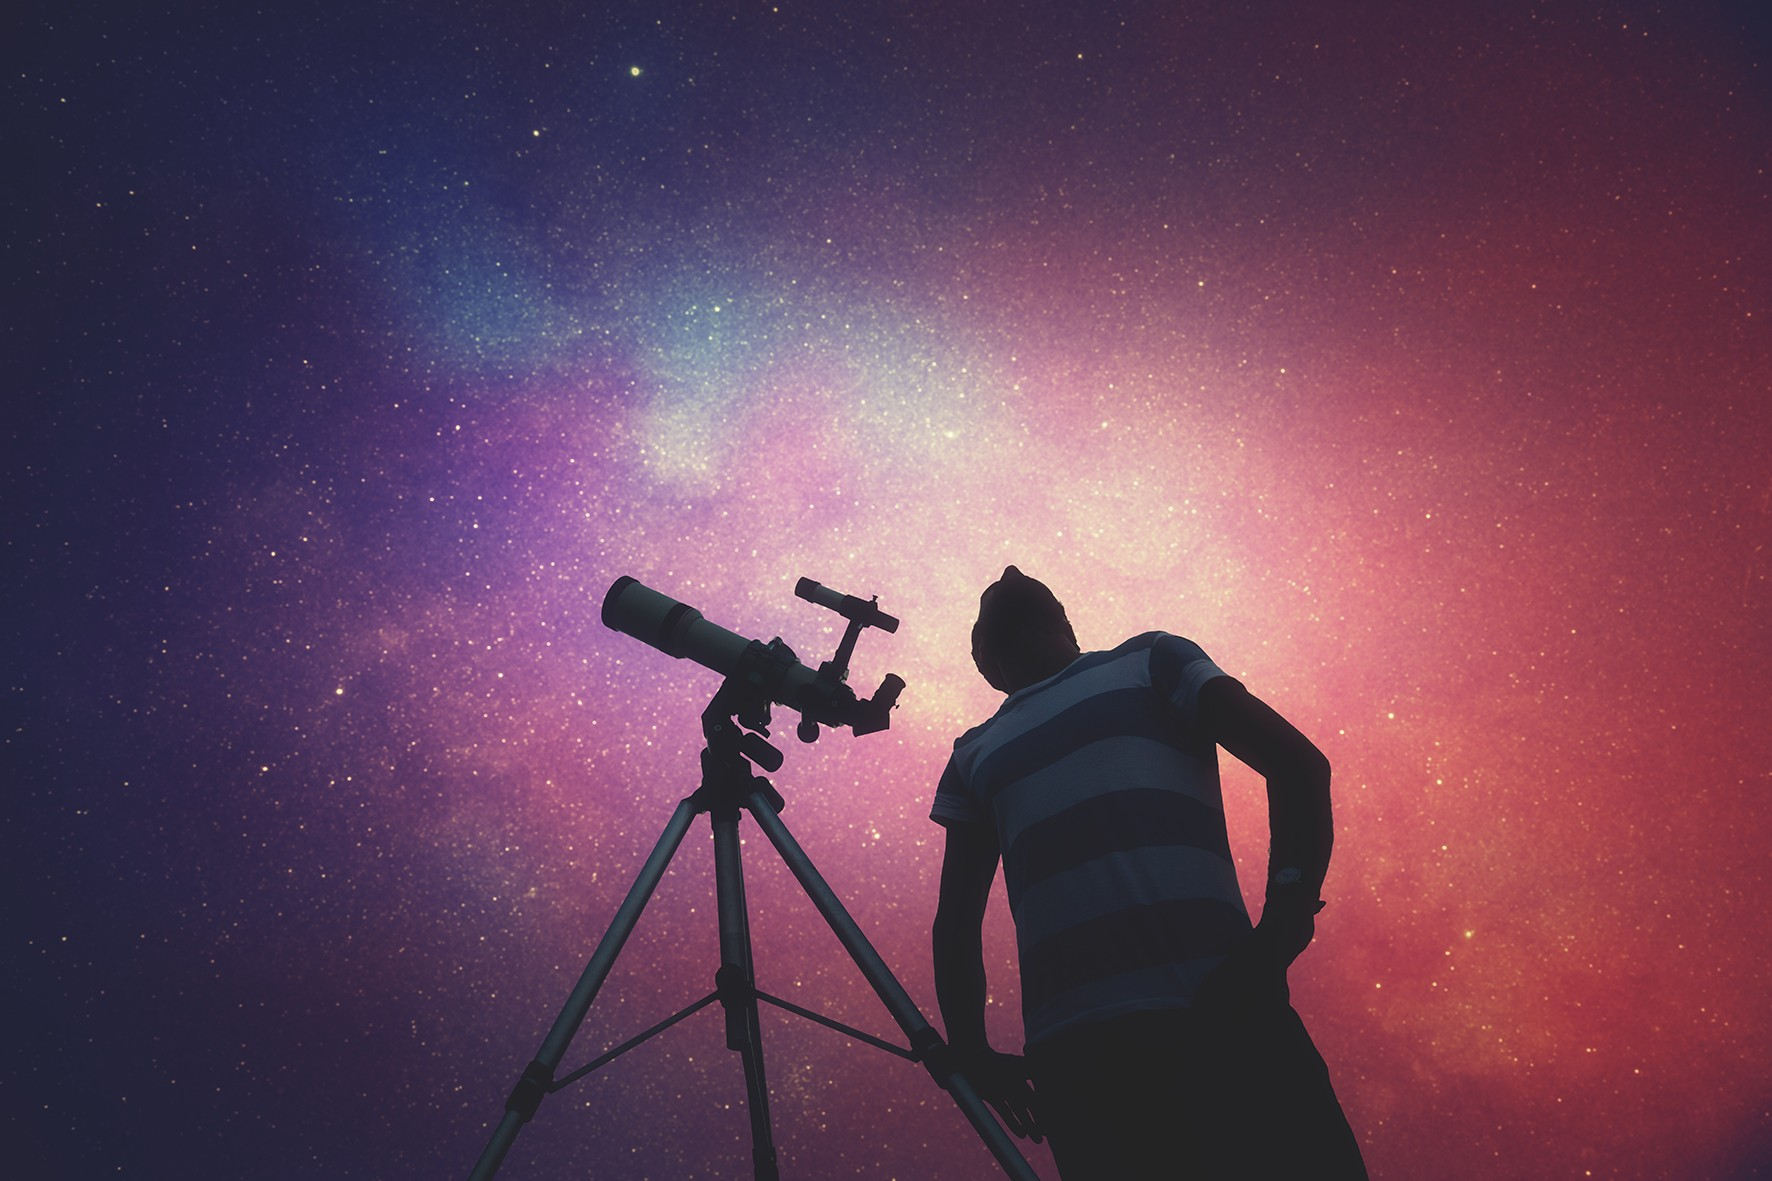 Man looking at the stars with telescope beside him. Milky Way stars are my astronomy work, no elements of NASA or other third party.